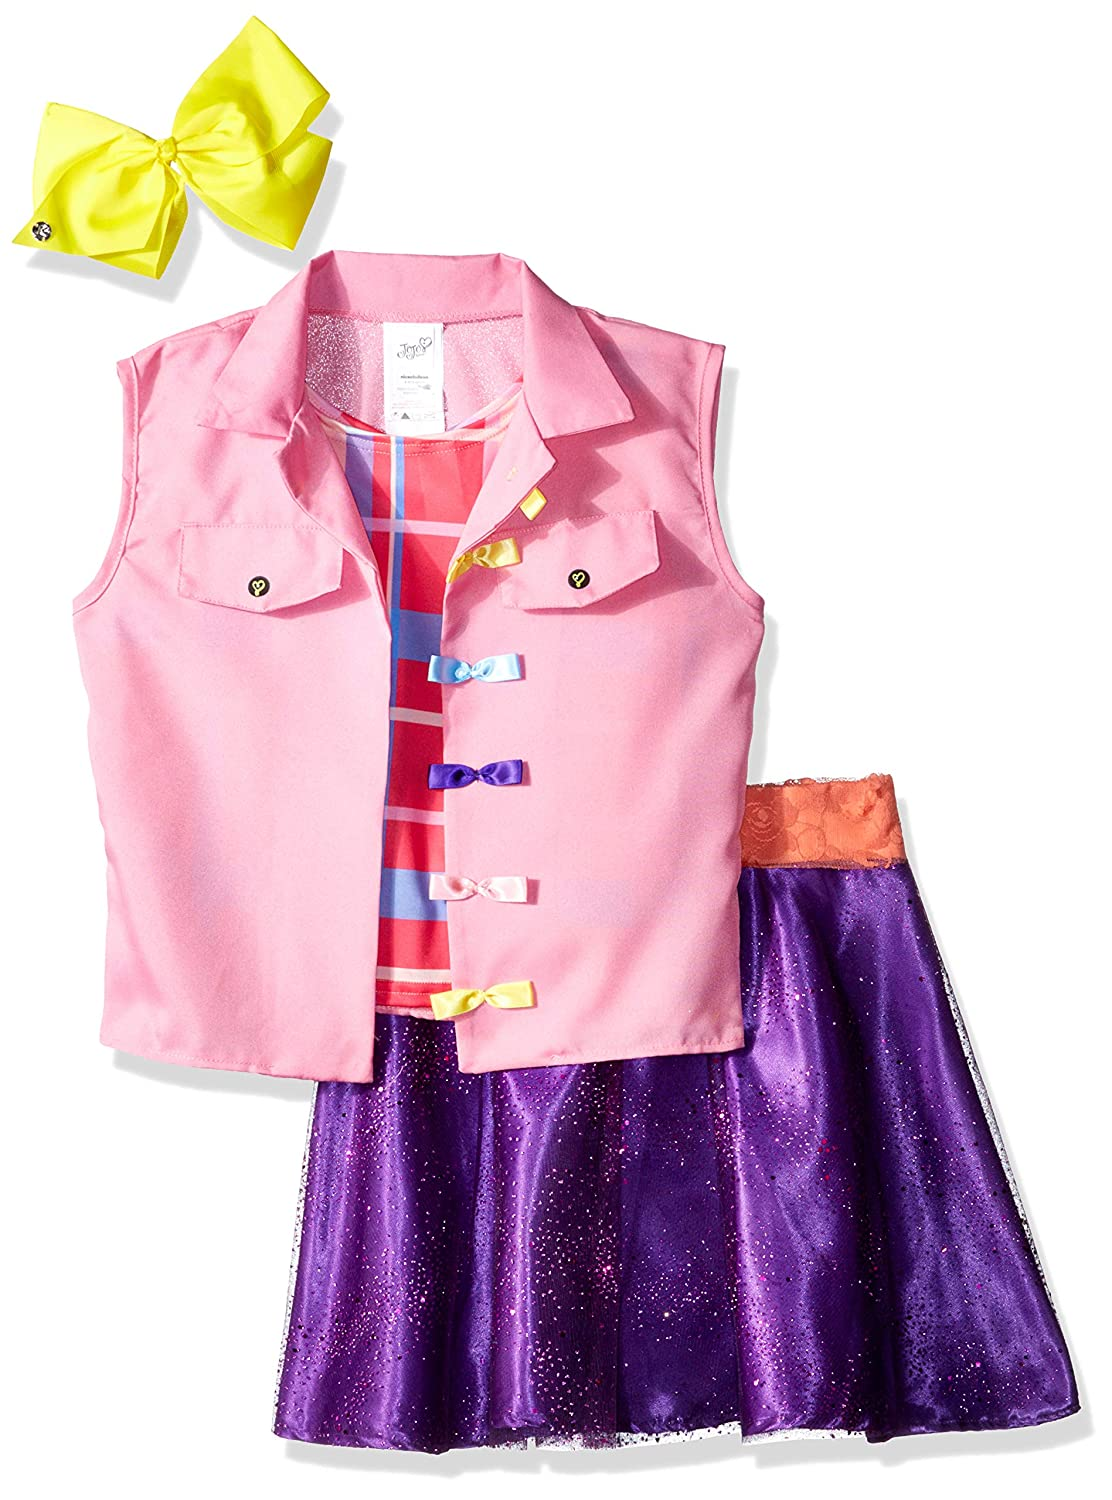 Rubie's Costume Co Jojo Siwa Boomerang Music Video Outfit Costume, Multicolor, Small Rubie' s Costume Co 640736-S